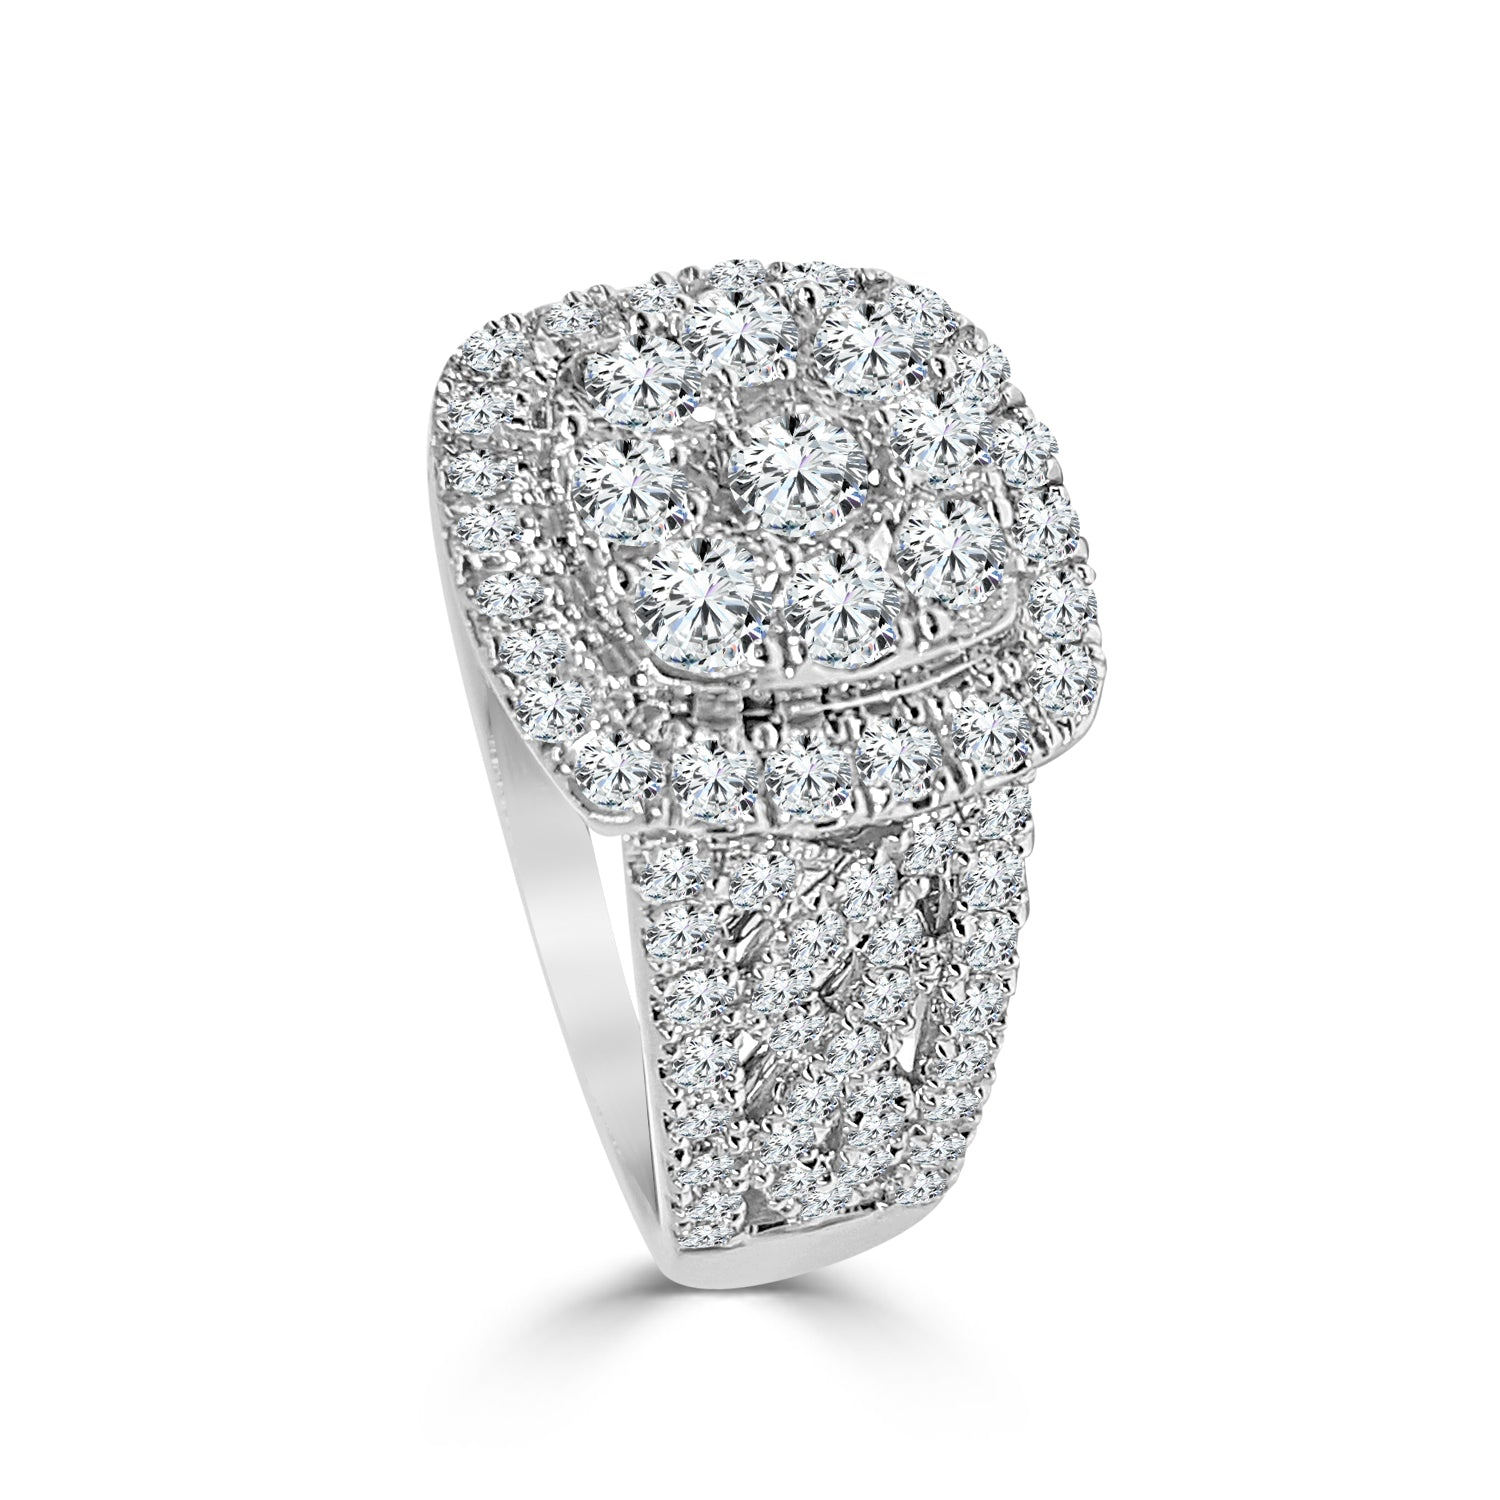 Diamond Cluster Ring With Halo And Wide Band